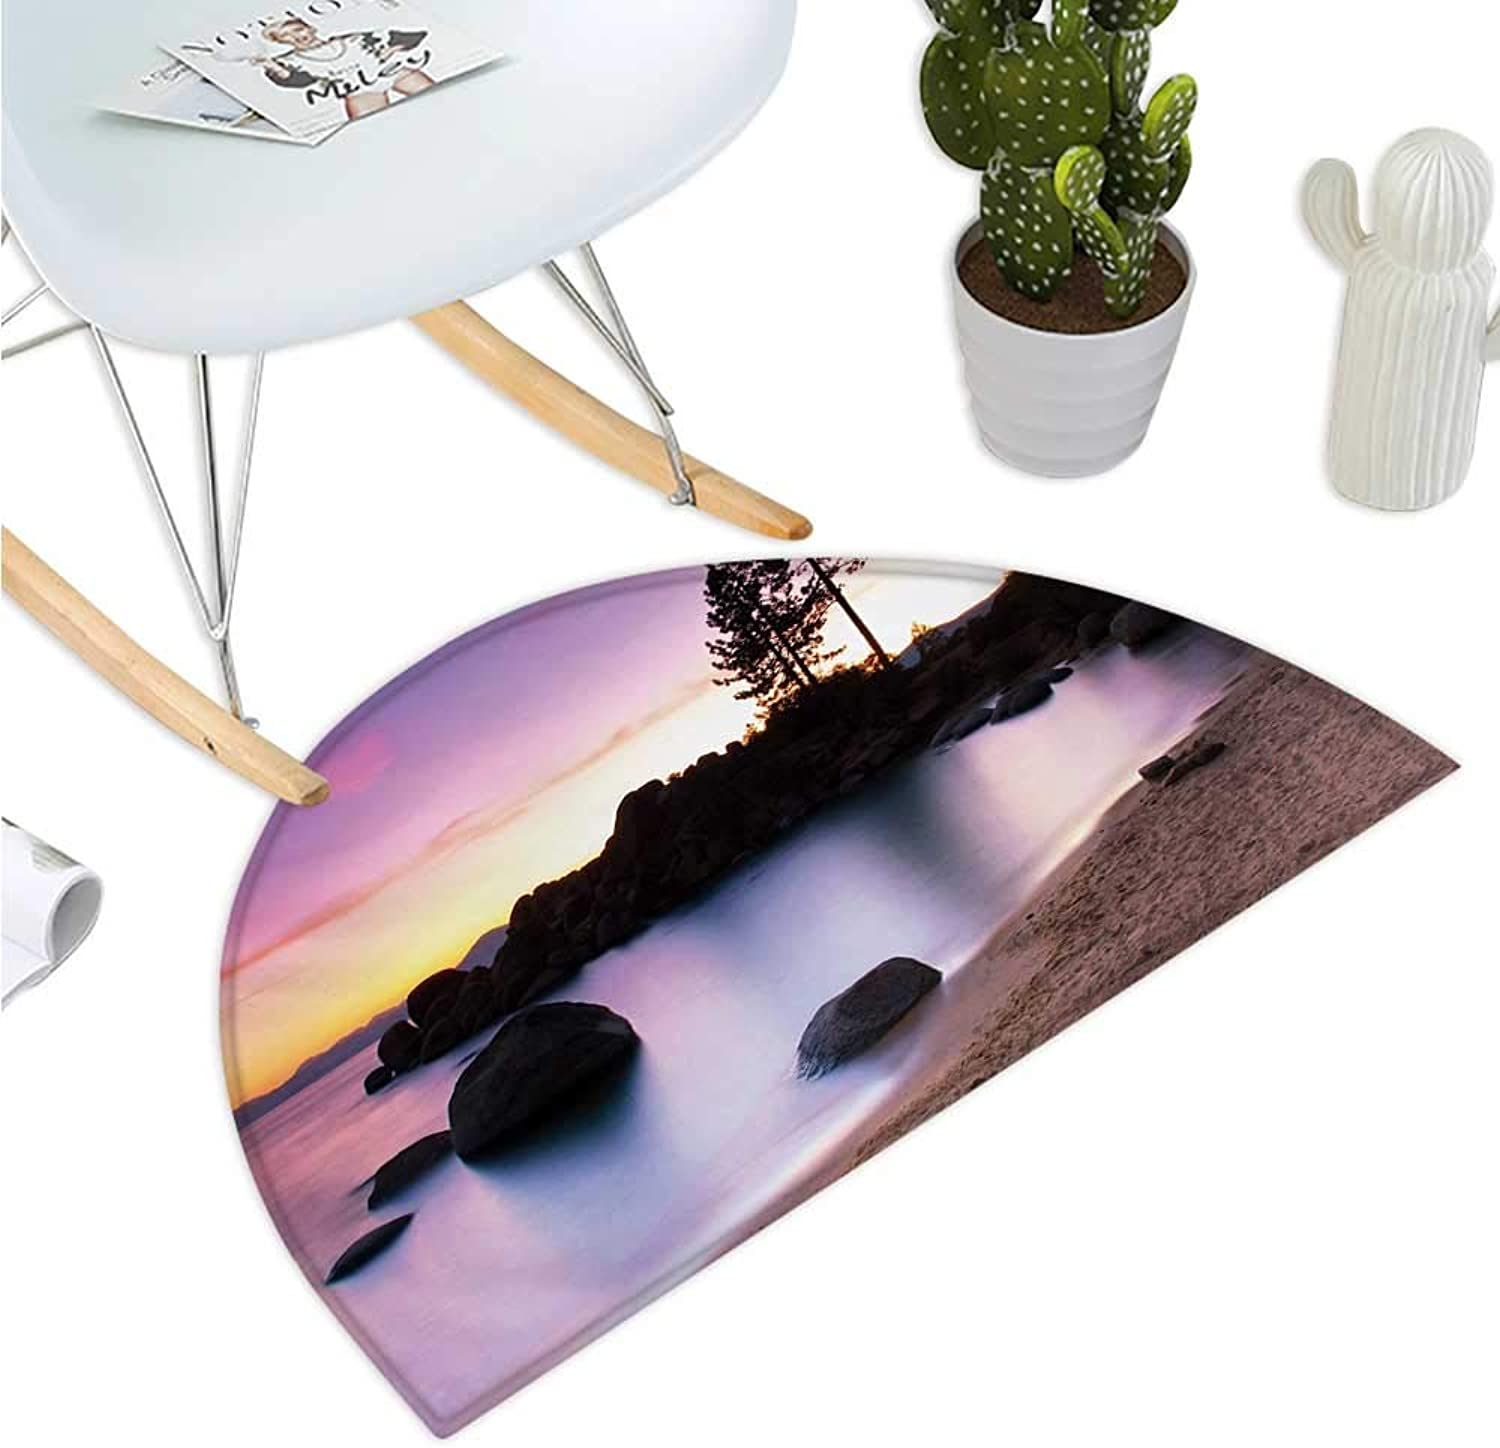 Nature Semicircle Doormat Lake Tahoe Beach at Sunset with Dreamy Purple Misty Sky Surreal Coast Scenery Entry Door Mat H 43.3  xD 64.9  Dark Brown Peach